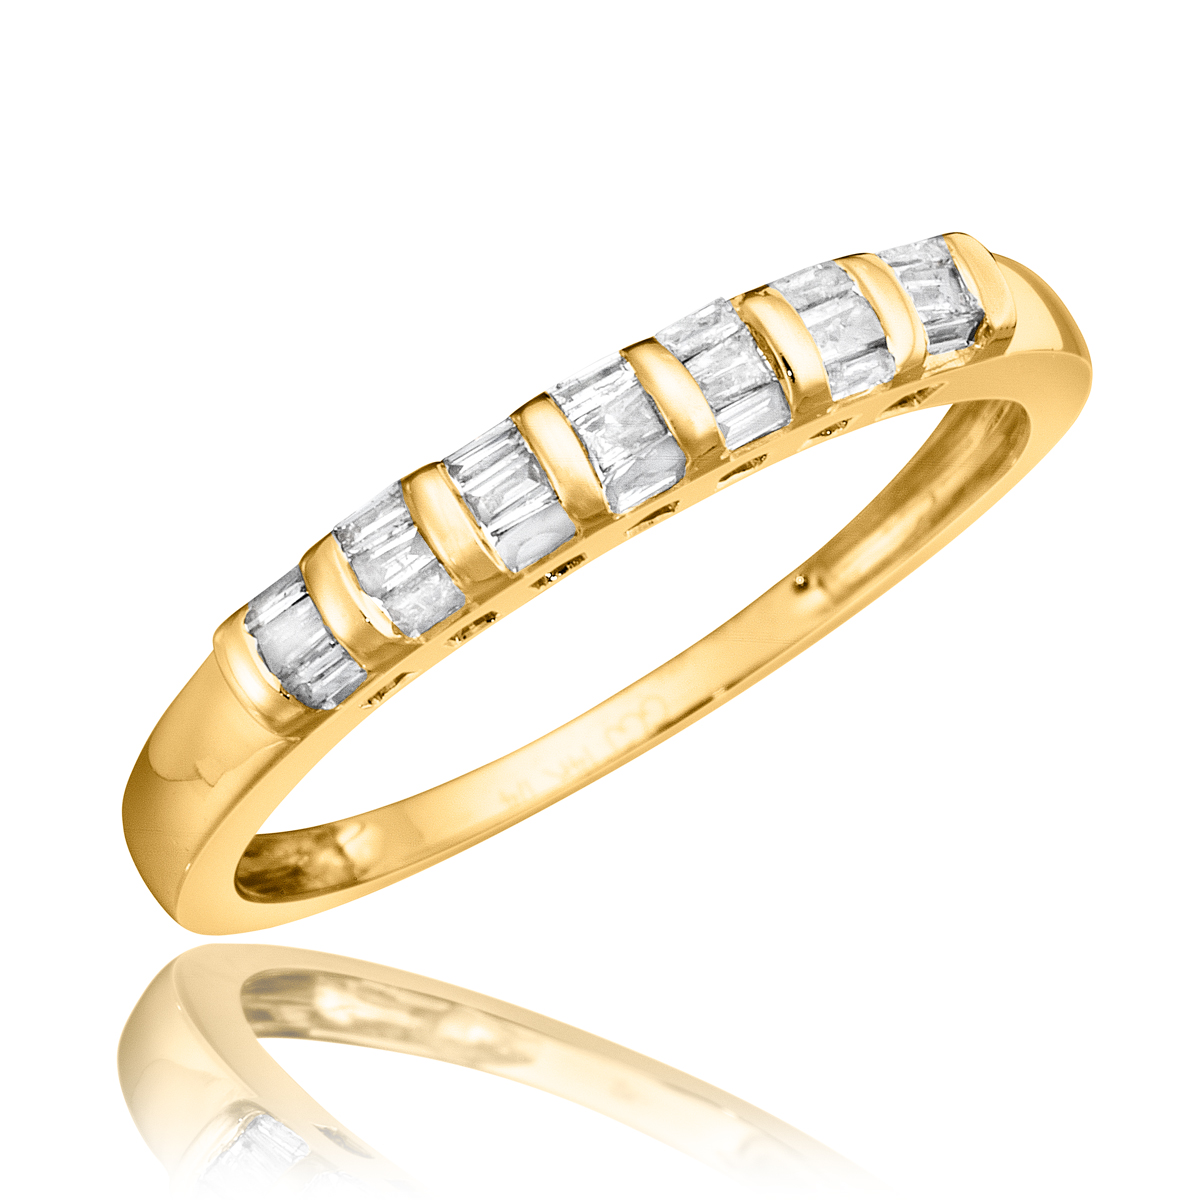 zales wedding rings for him hd pictures - Zales Wedding Rings For Her